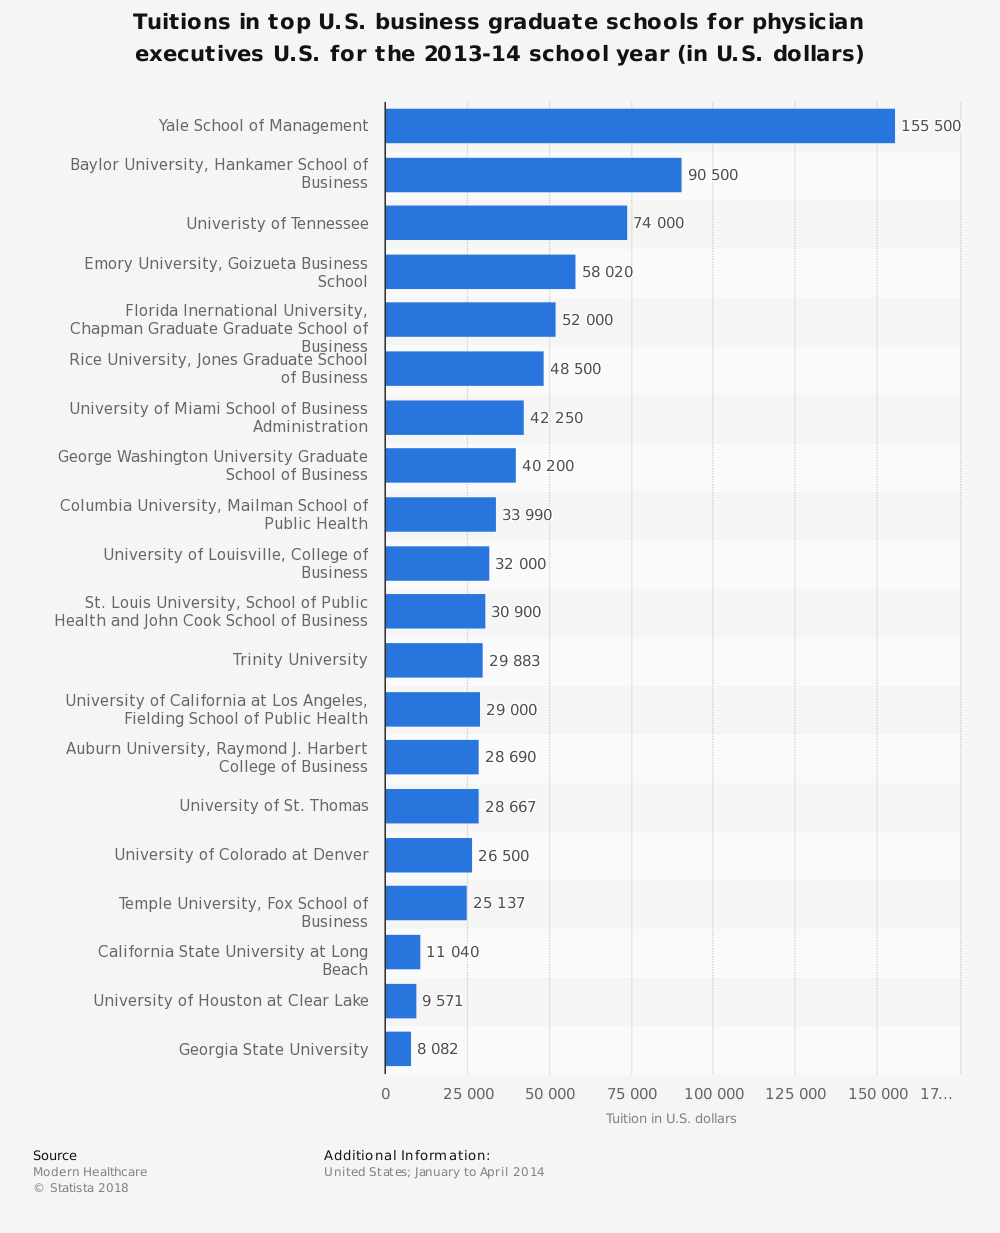 Statistic: Tuitions in top U.S. business graduate schools for physician executives U.S. for the 2013-14 school year (in U.S. dollars) | Statista